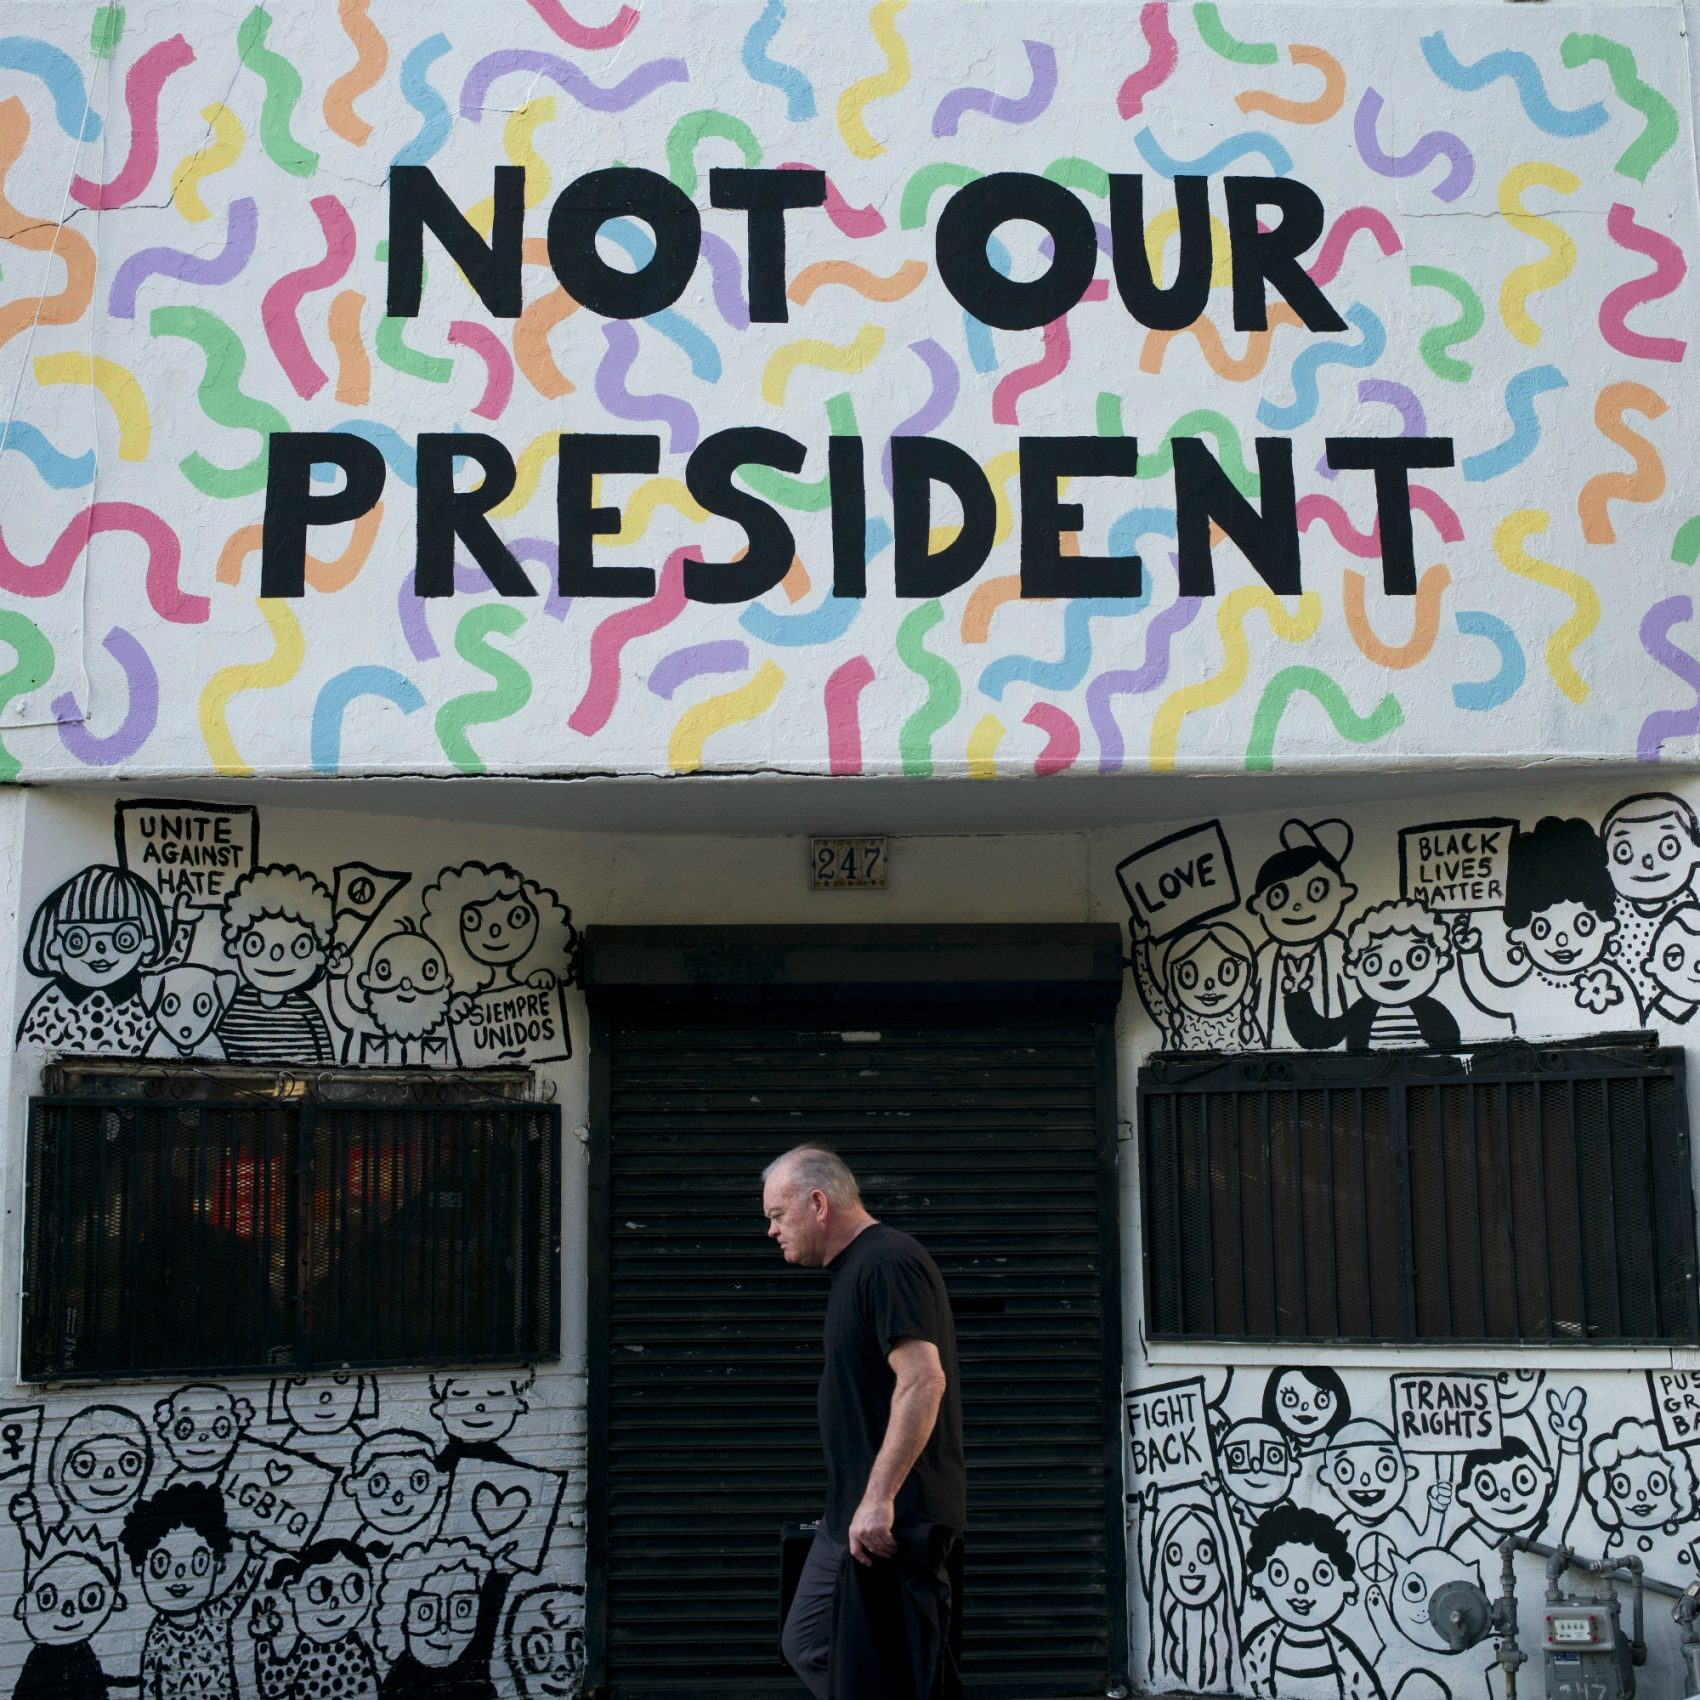 """Reports of the death of identity politics have been greatly exaggerated, writes Susan E. Reed. Pictured: A man walks past a building with the phrase """"Not Our President"""" written on the facade to protest against President-elect Donald Trump Thursday, Dec. 8, 2016, in Los Angeles. (Jae C. Hong/AP)"""